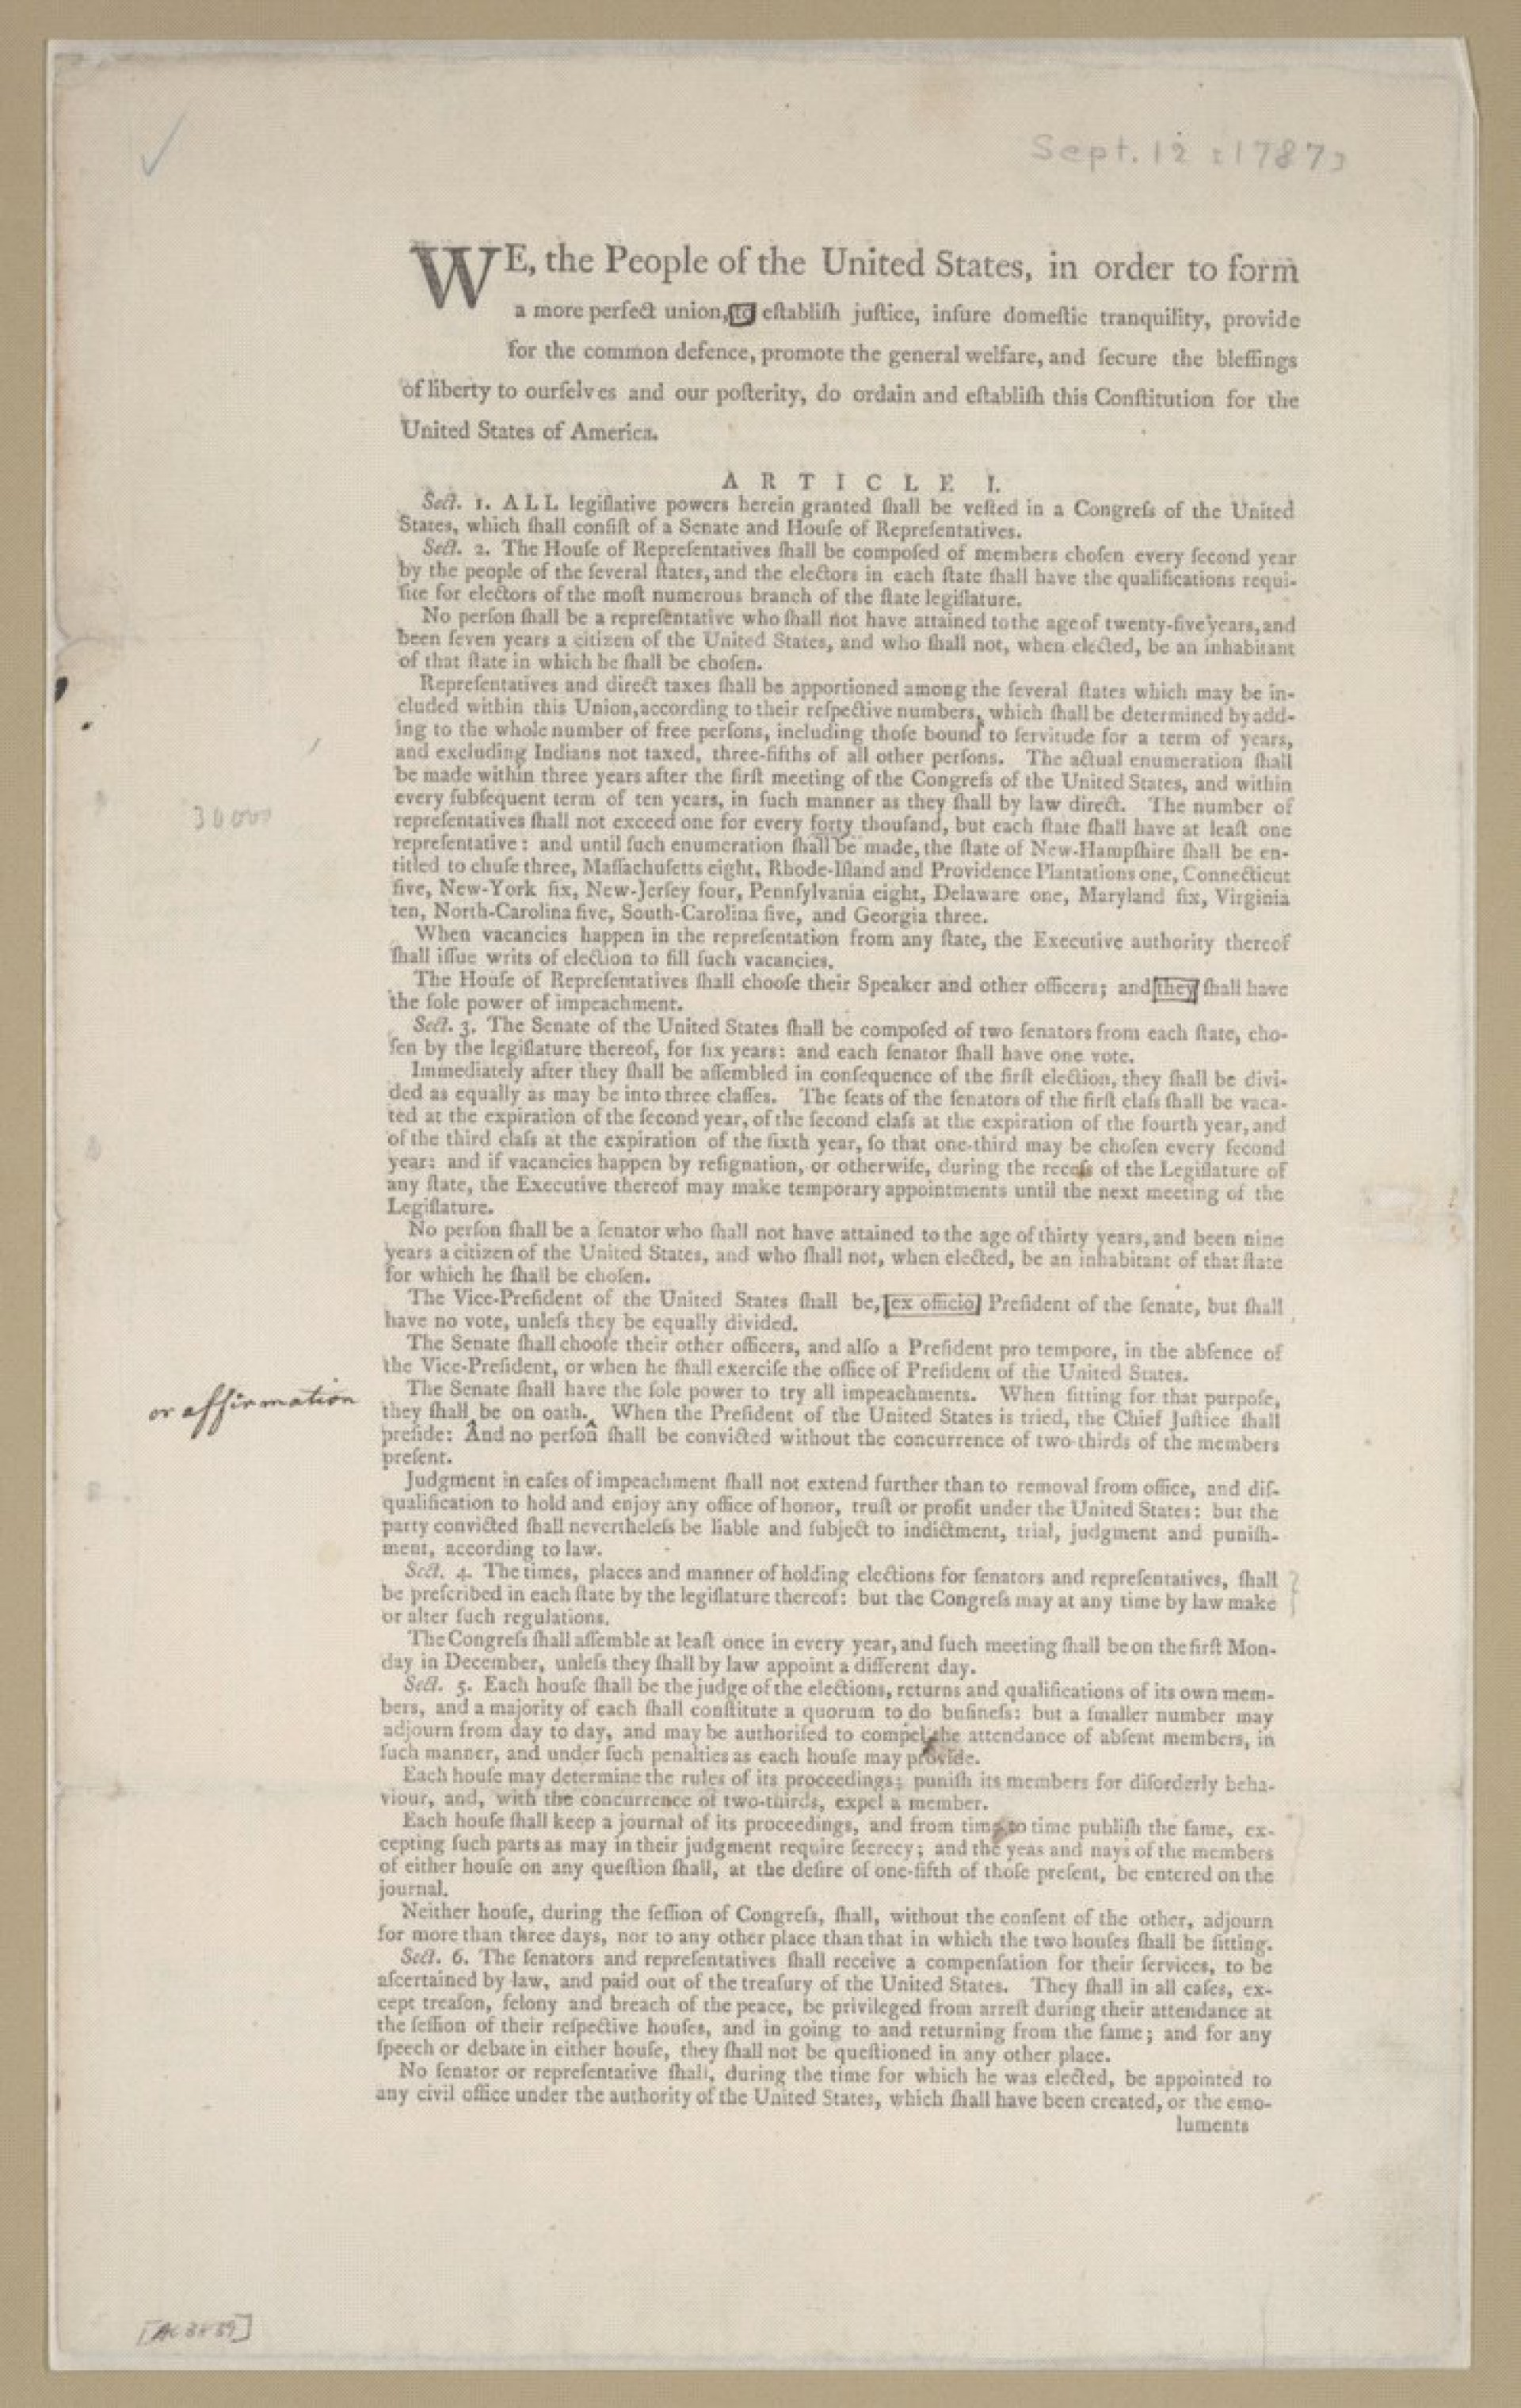 017 Essay Example Alexander Hamilton Essays Us0062 01p1 Enlarge 725 Frightening 51 Federalist Papers 78 Did Wrote 1920